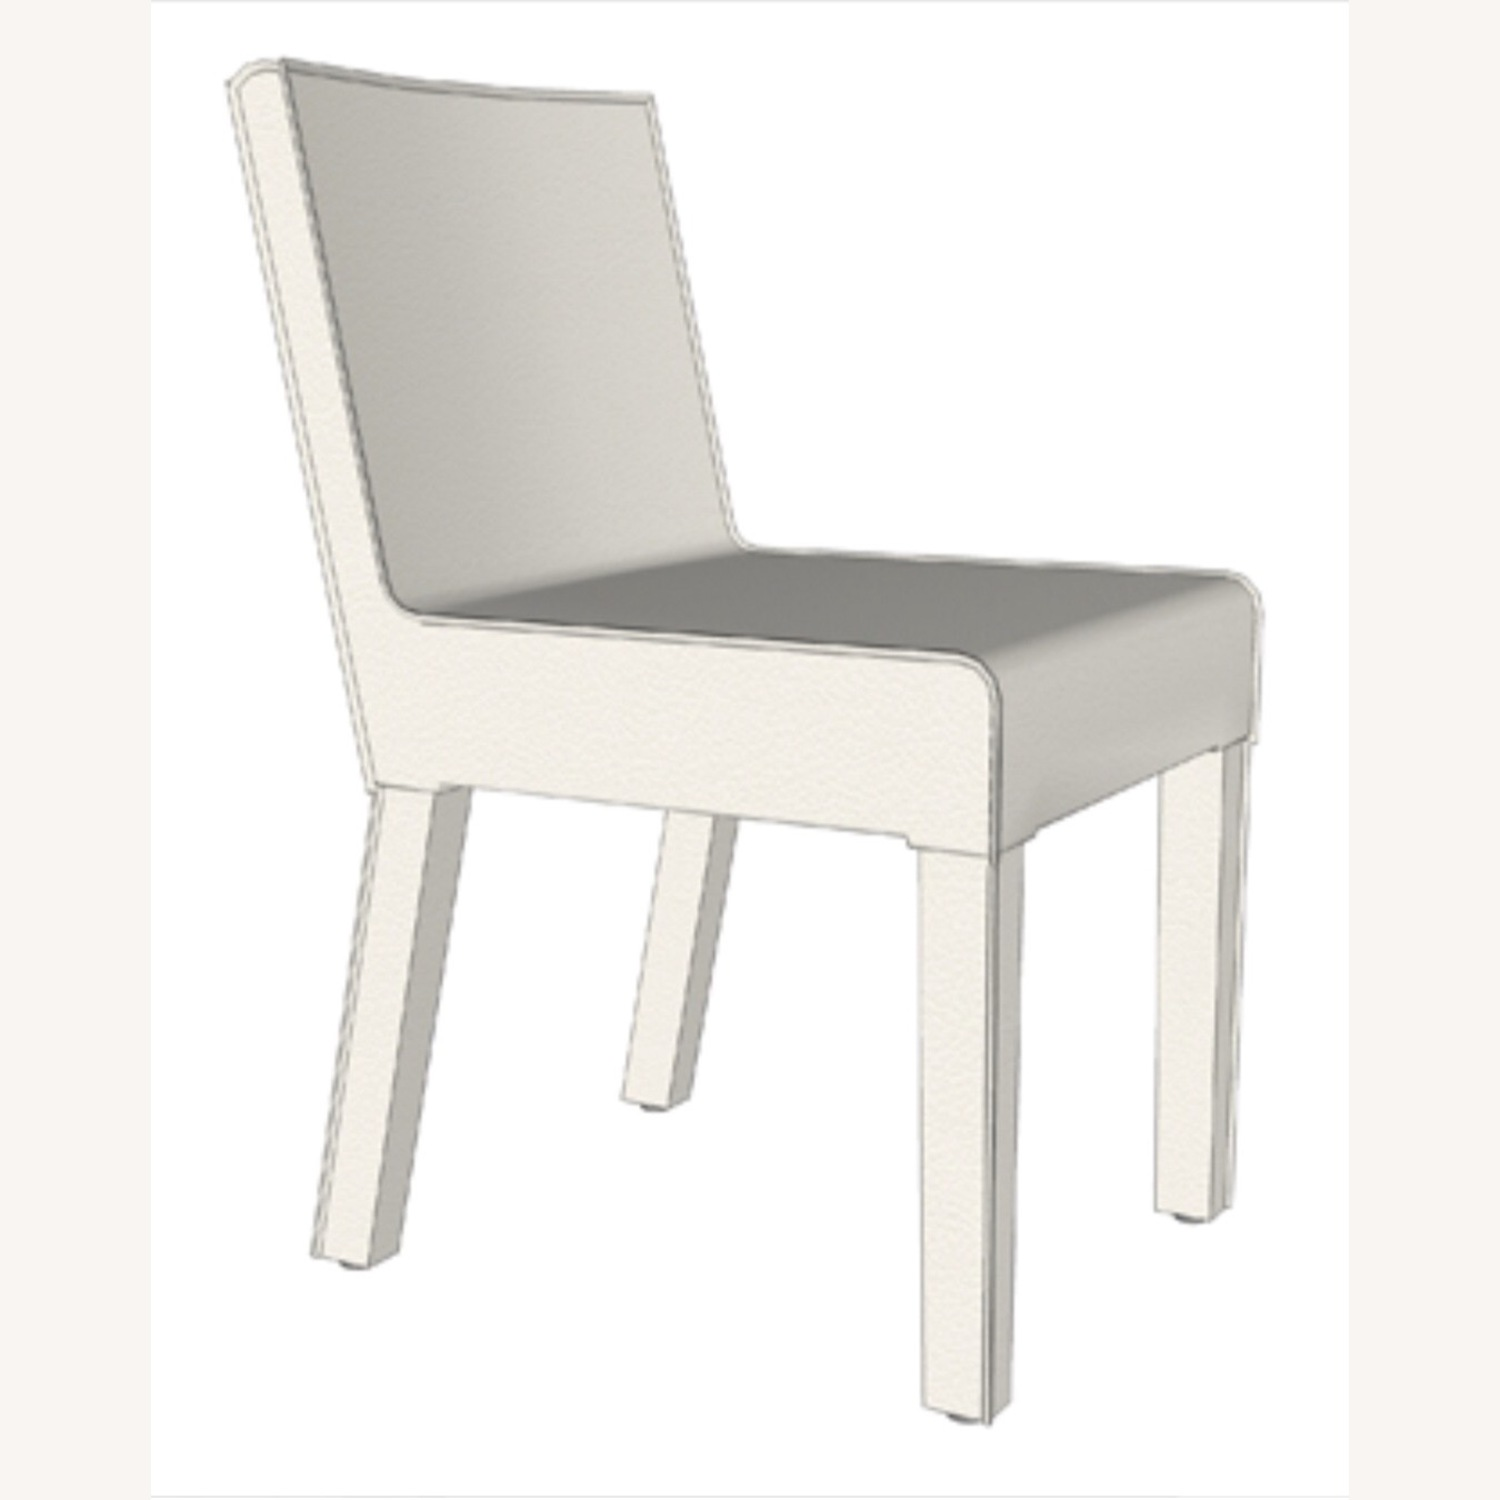 4 Chalk Leather Dining Chairs - image-1